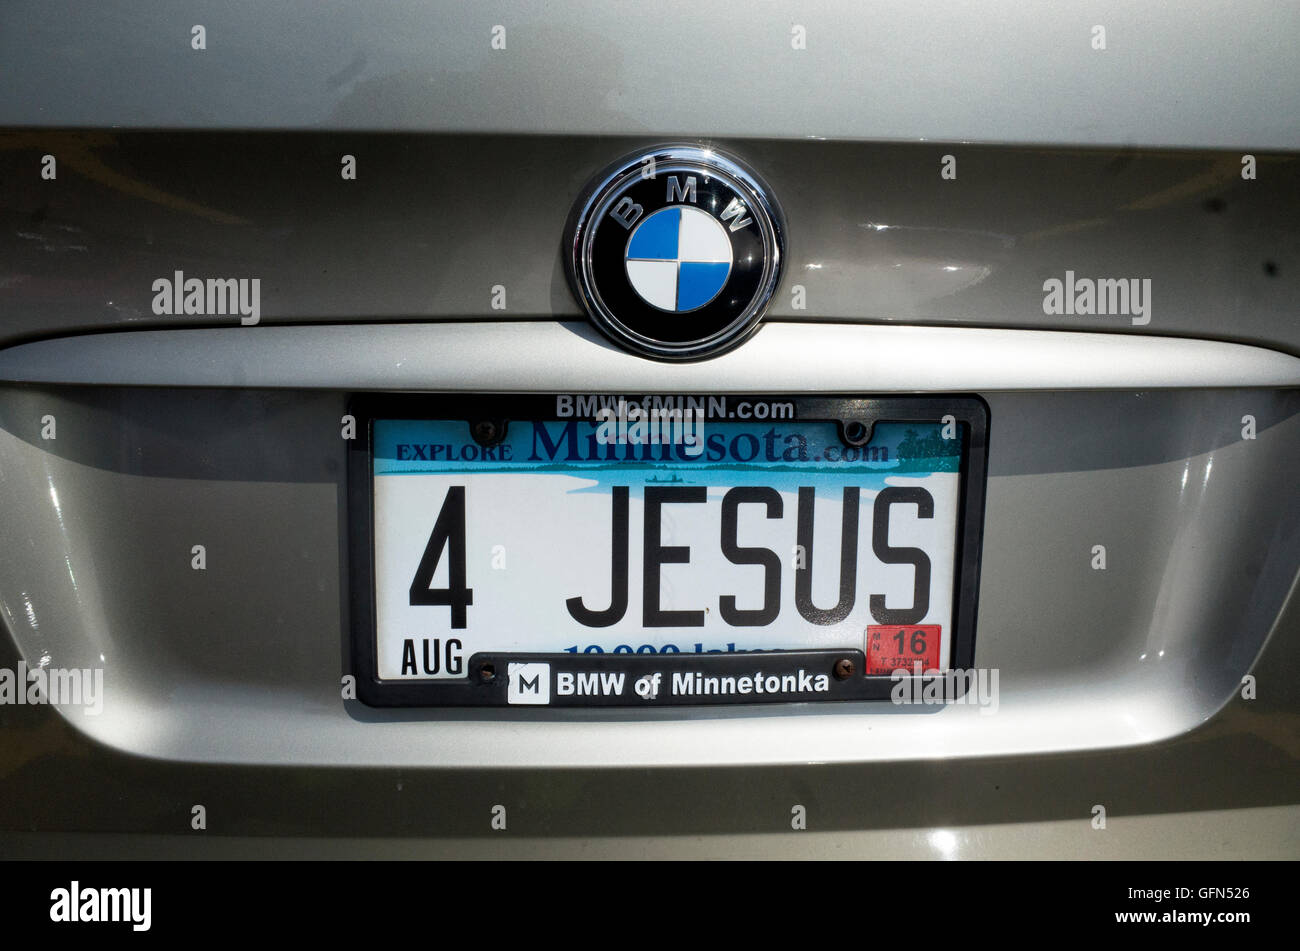 4 Jesus Designer Personal License Plate On A Bmw Car St Paul Stock